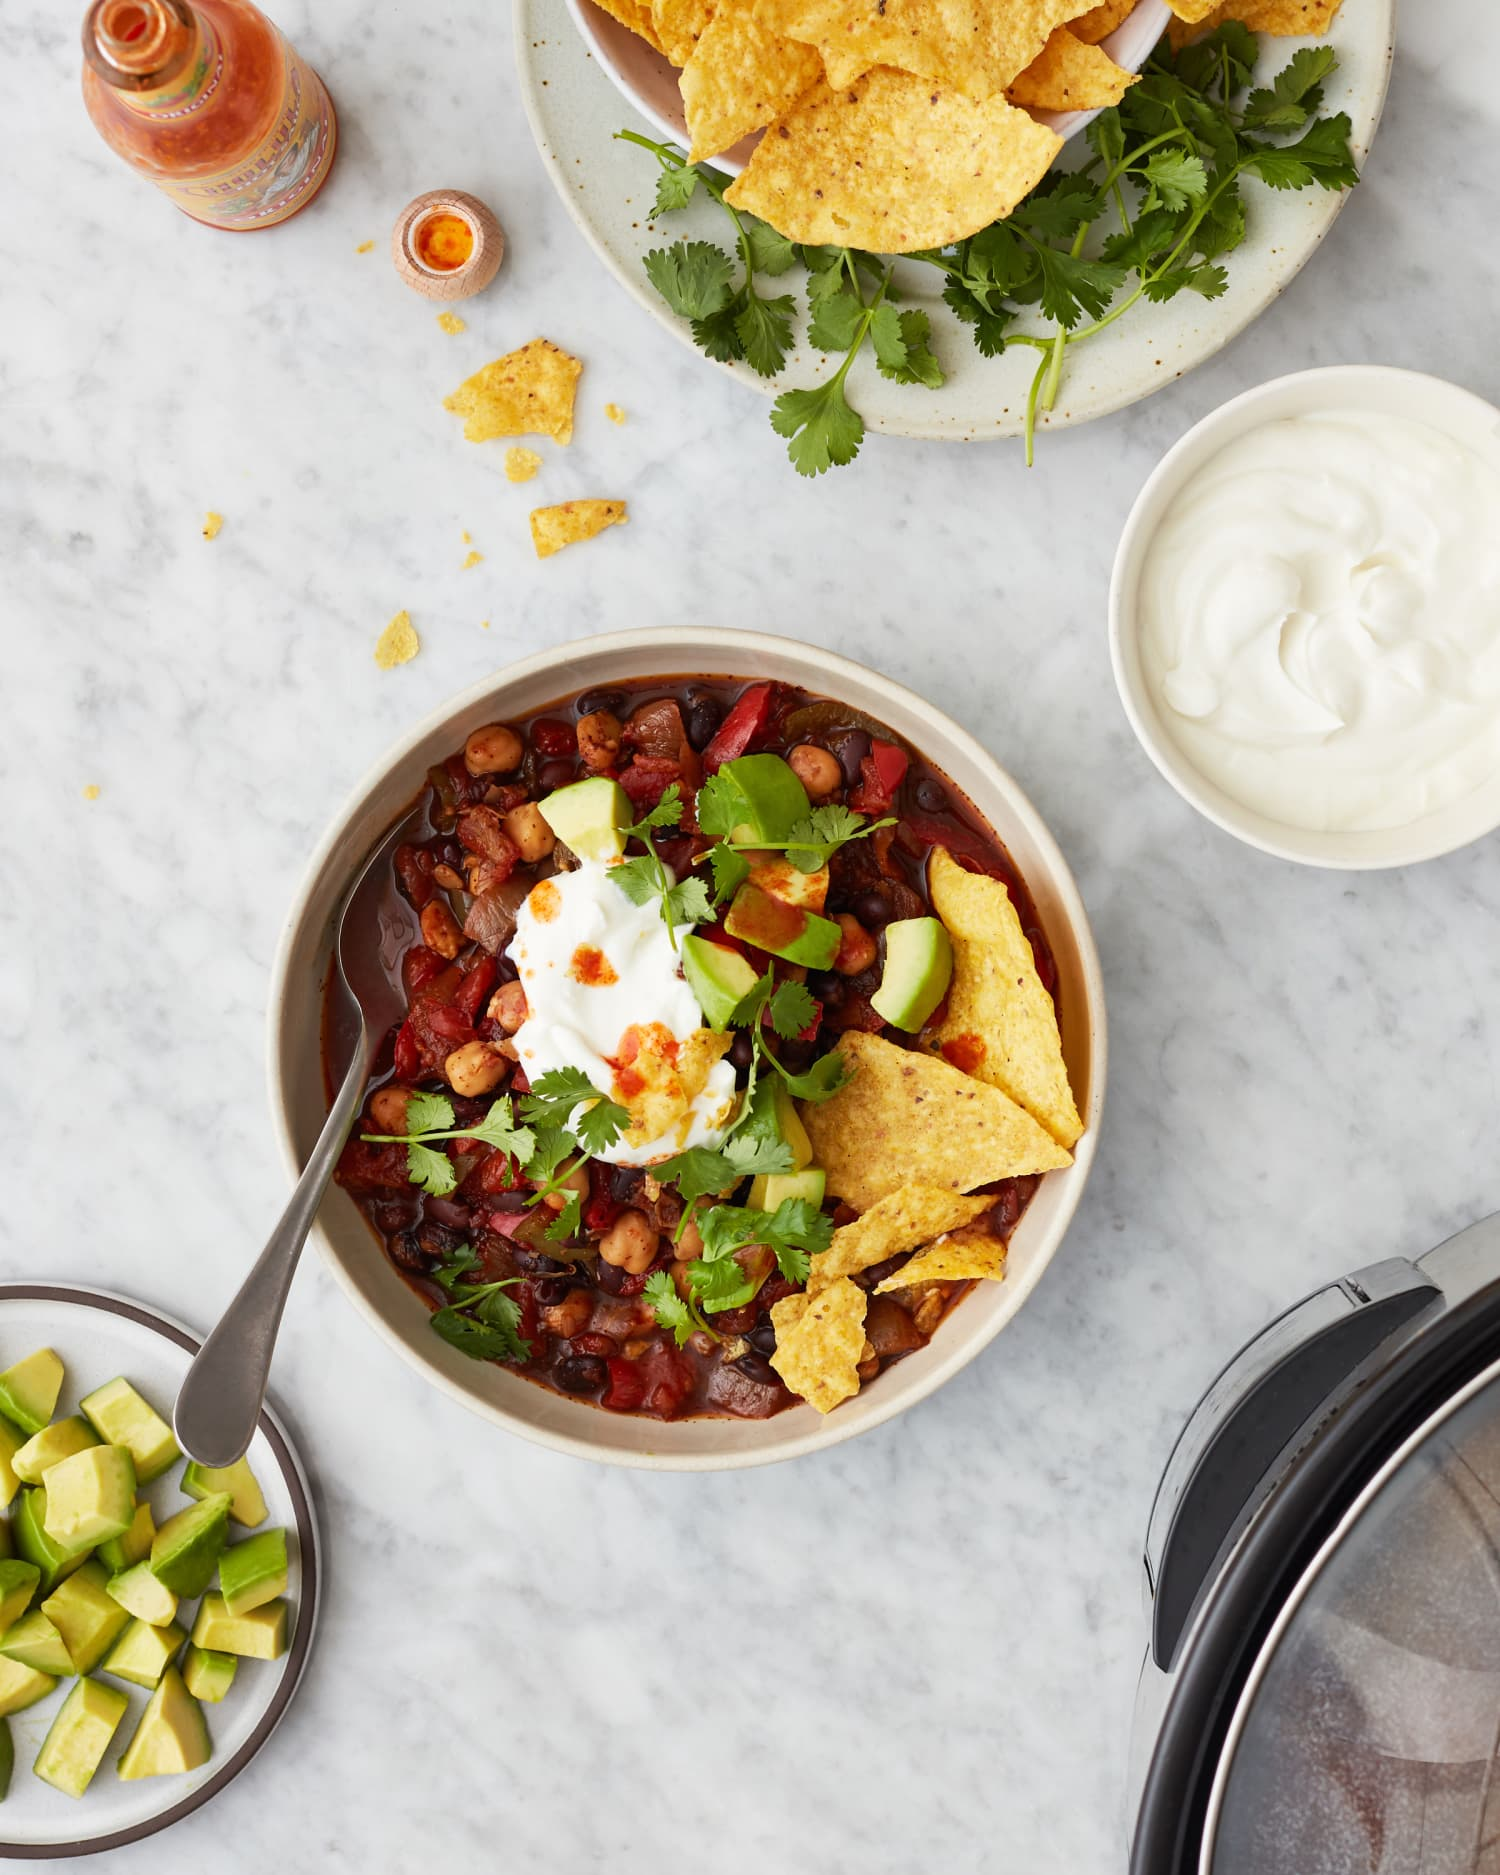 Here's How to Turn 6 Ingredients into Vegetarian Chili in a Slow Cooker